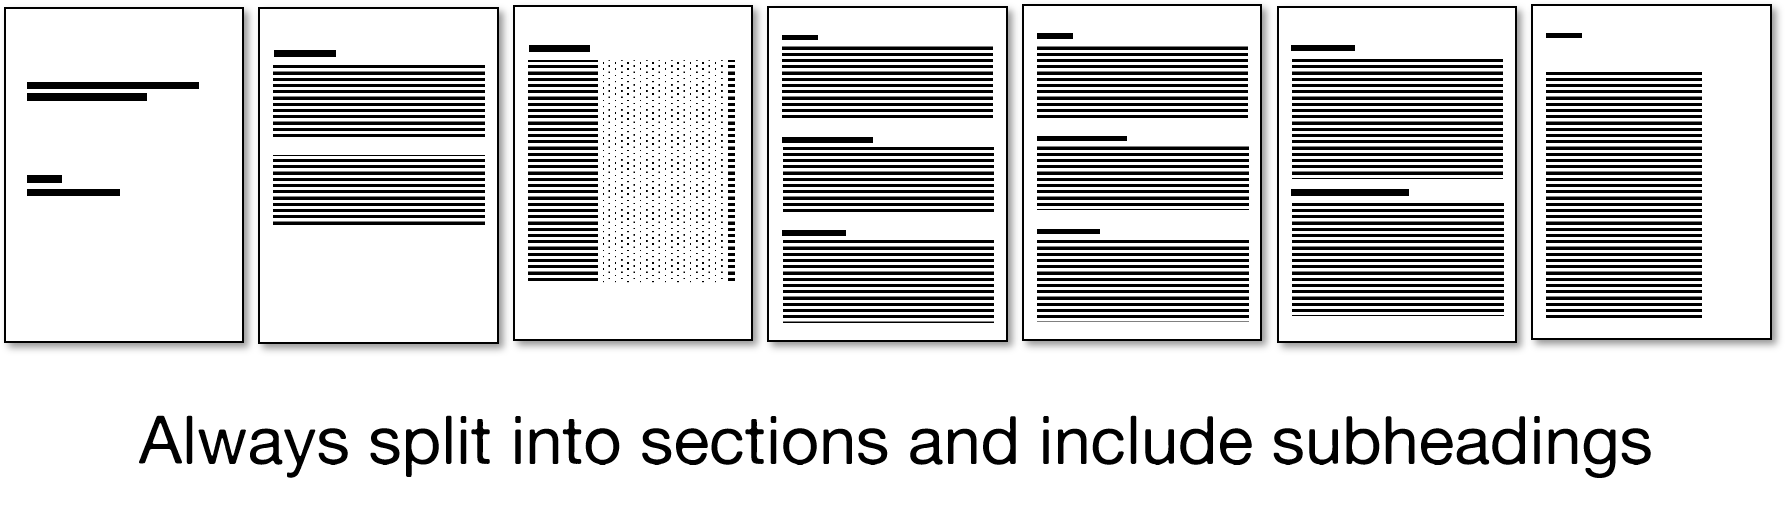 visualisation of a report showing different sections split over several pages